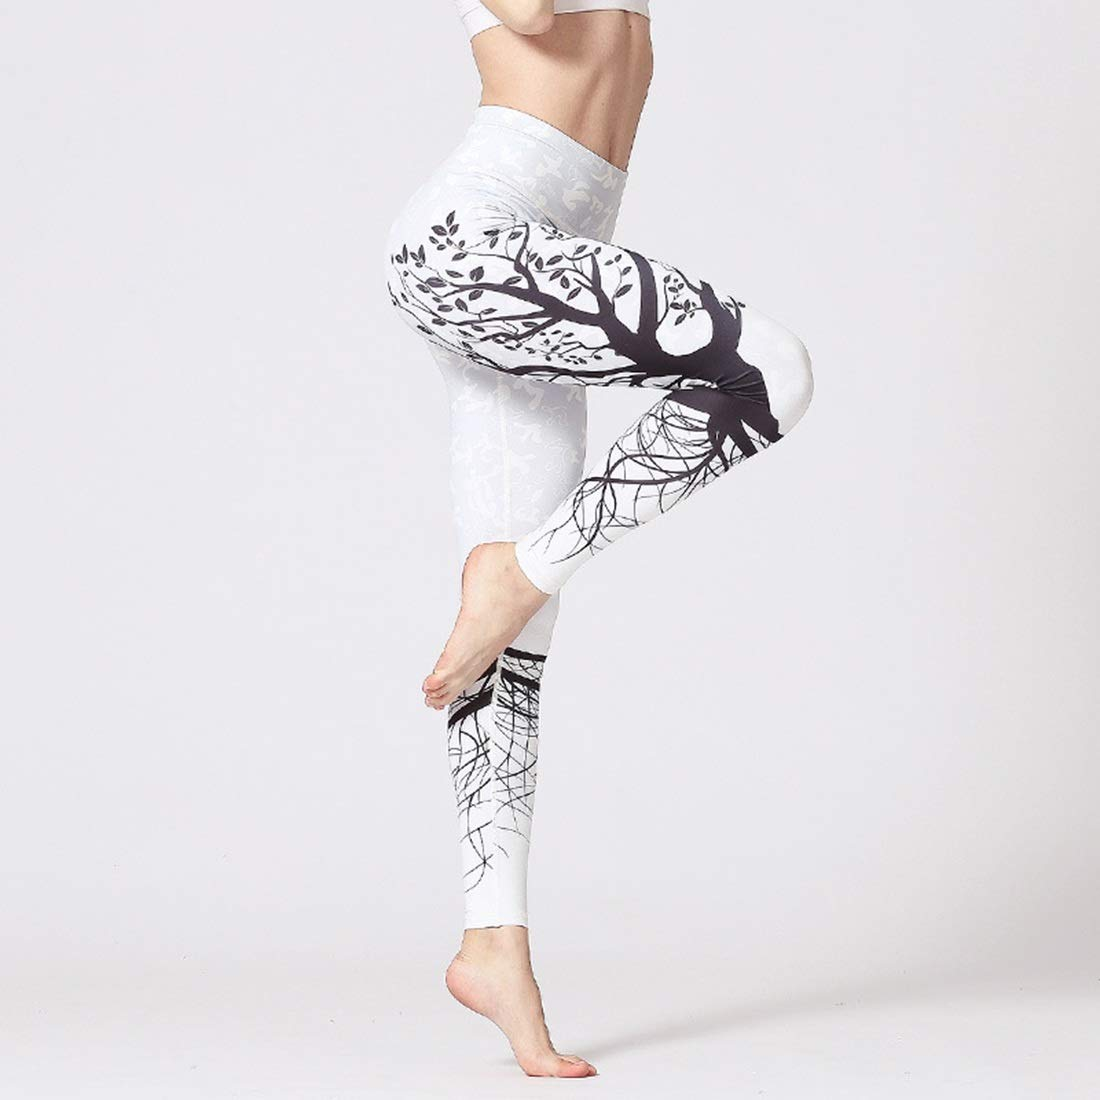 A003 Huayue Yoga Pants Women's Printing and QuickDrying Elongate Operative Fitness Printing Trousers